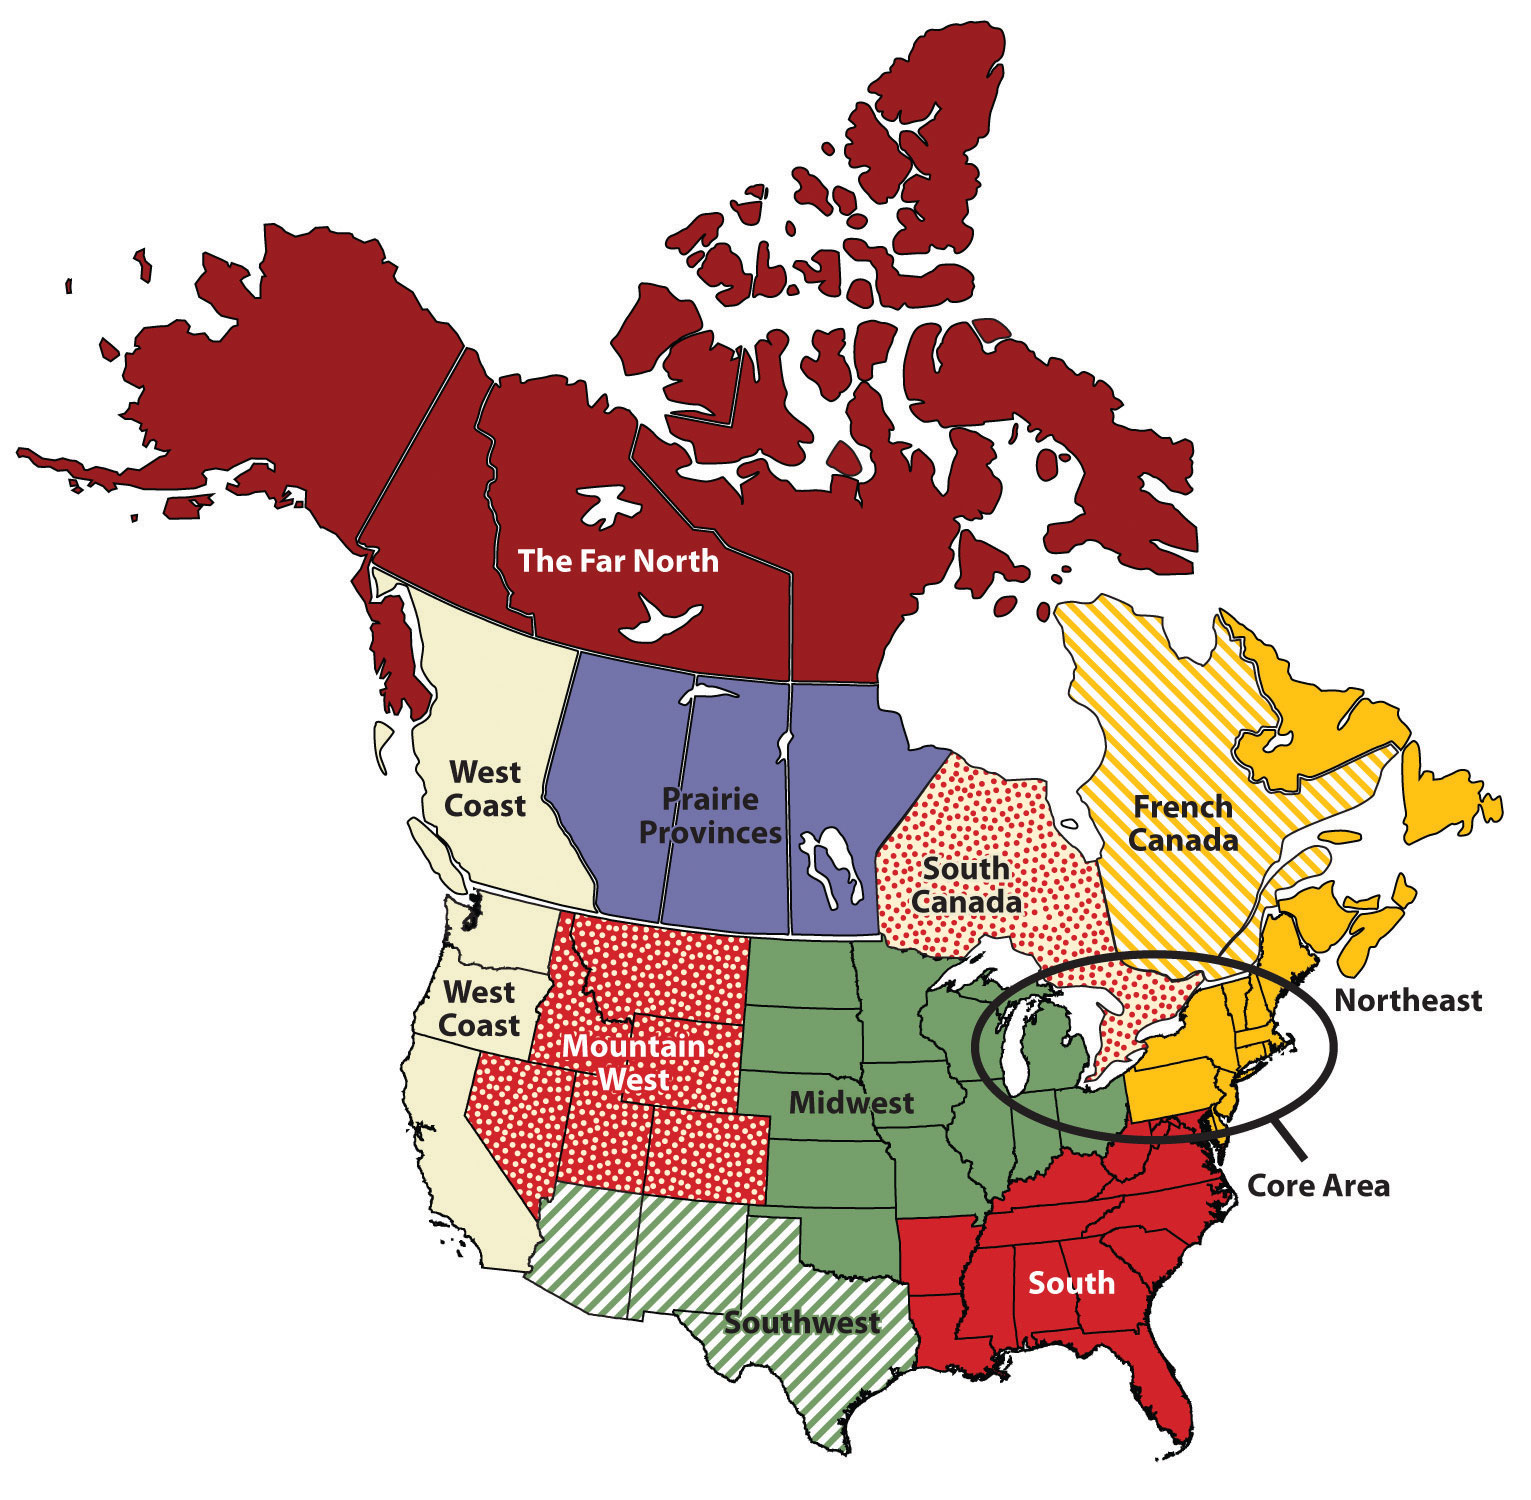 Regions of the United States and Canada on